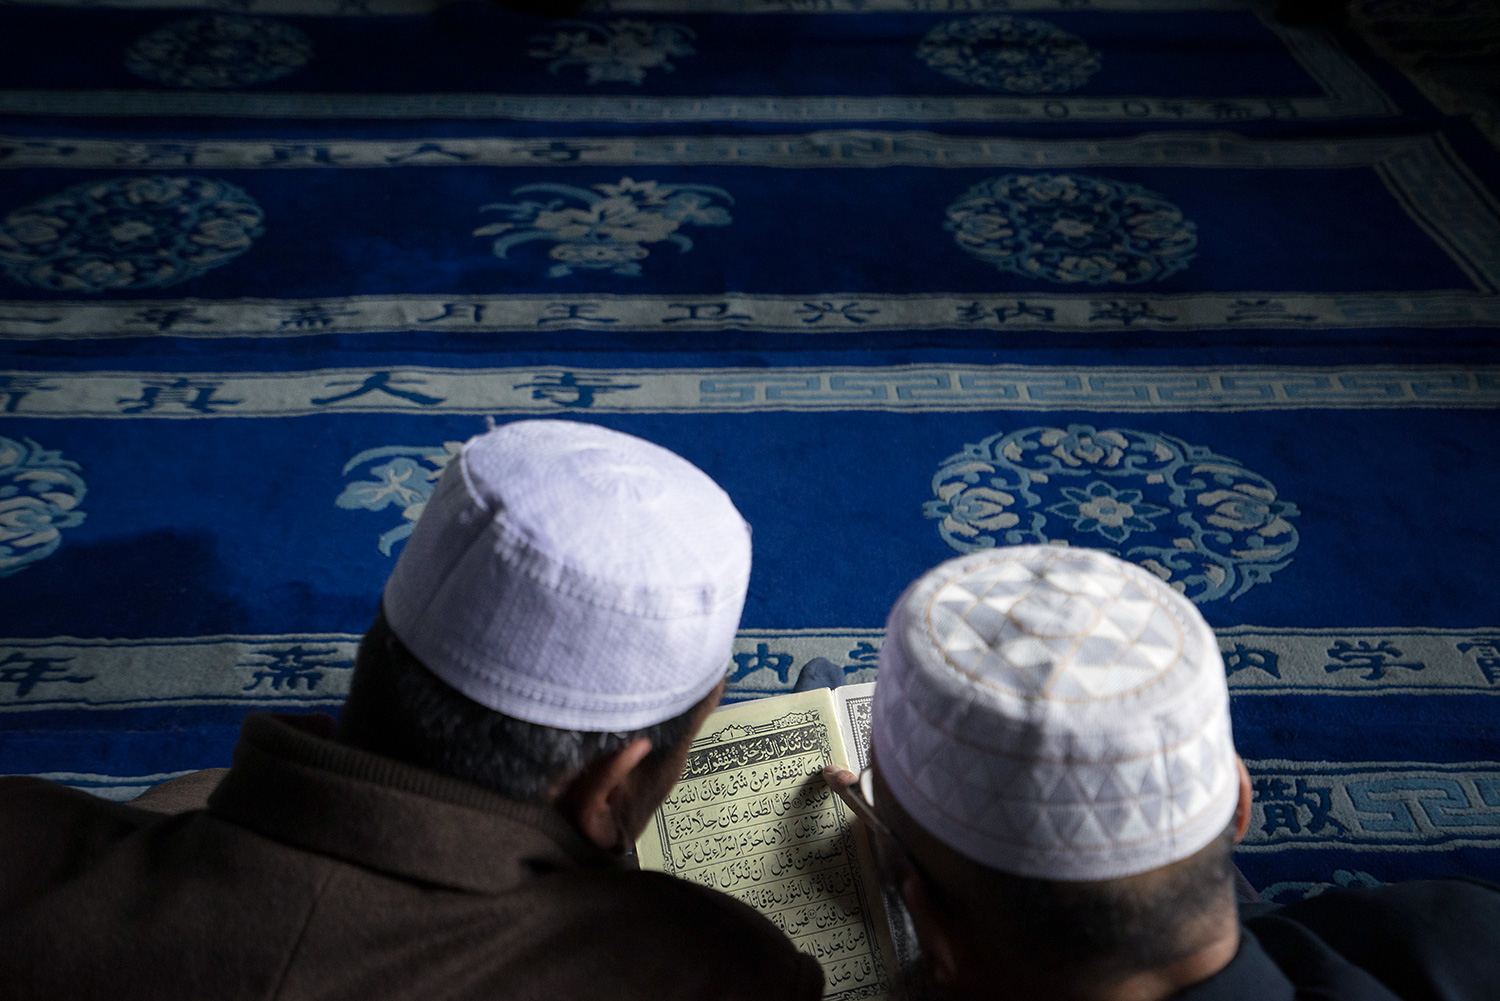 Men share a Quran while sitting on the floor in the main prayer hall of the Najiahu Mosque.